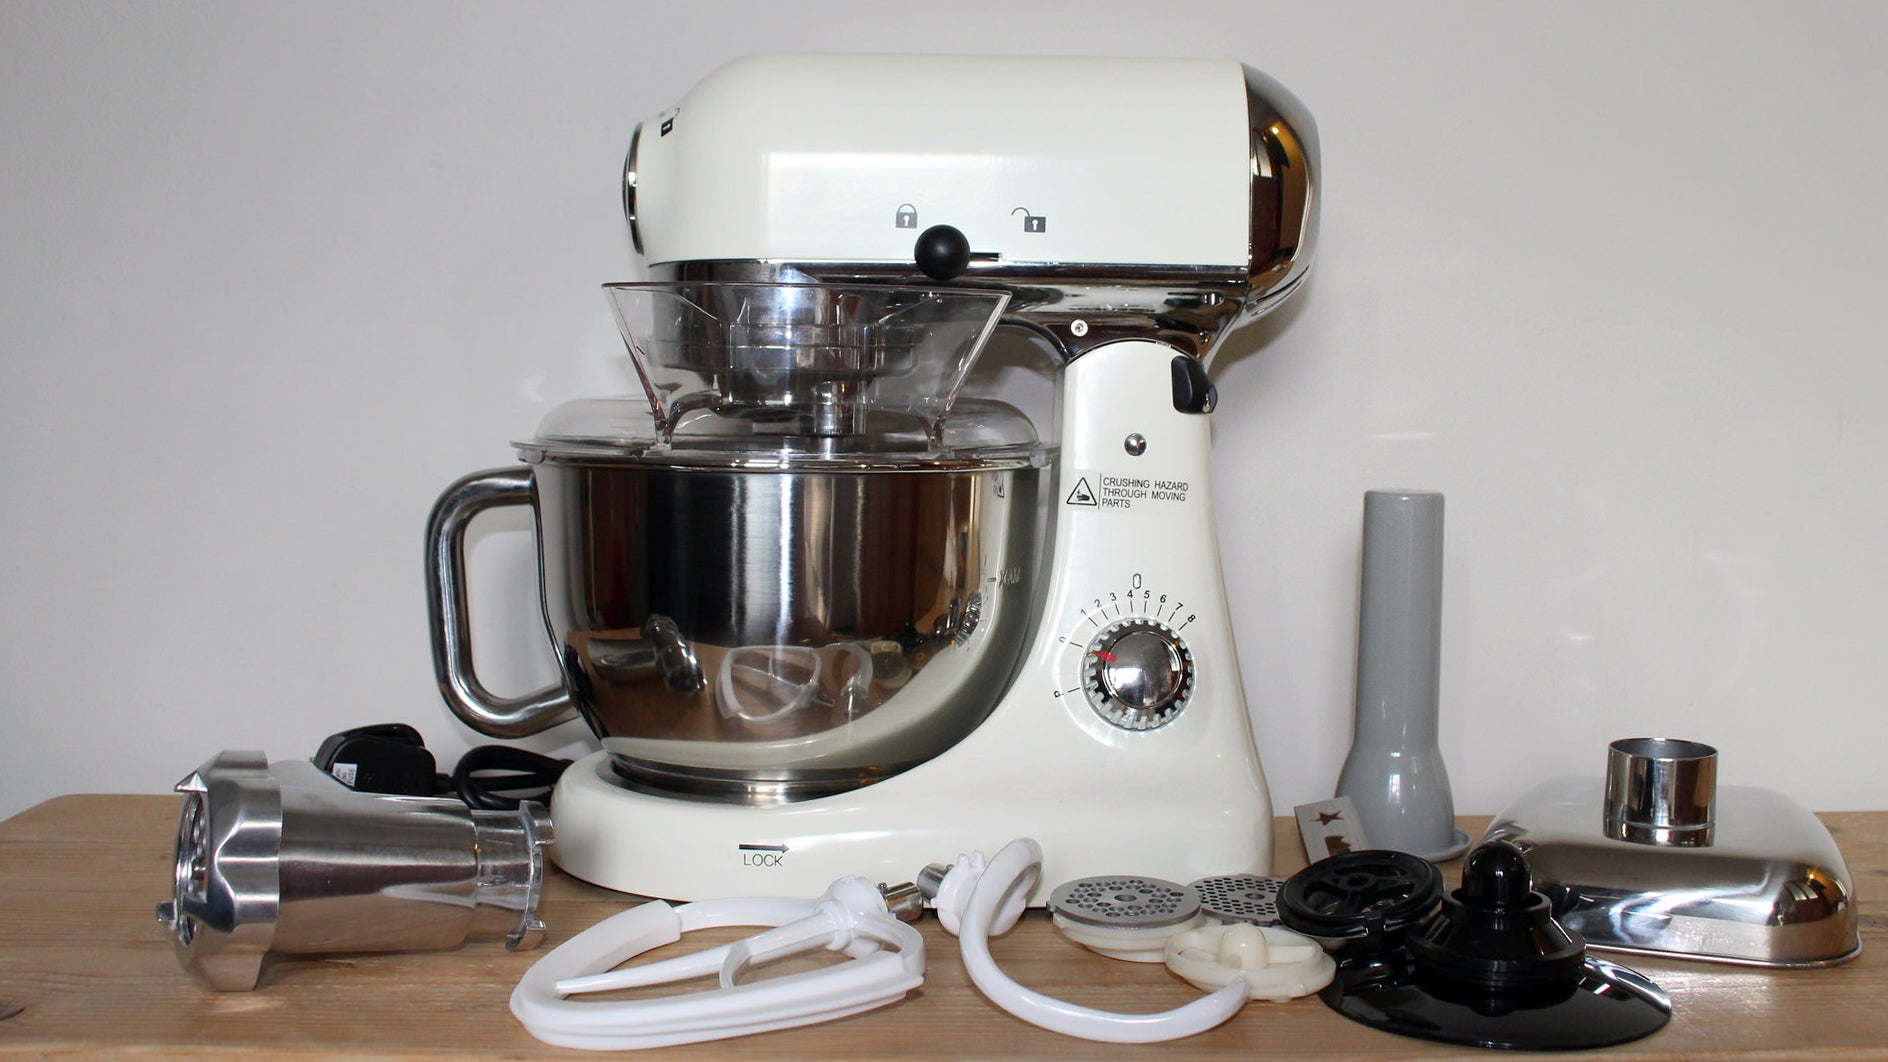 Aldi Ambiano Premium Stand Mixer Review Trusted Reviews